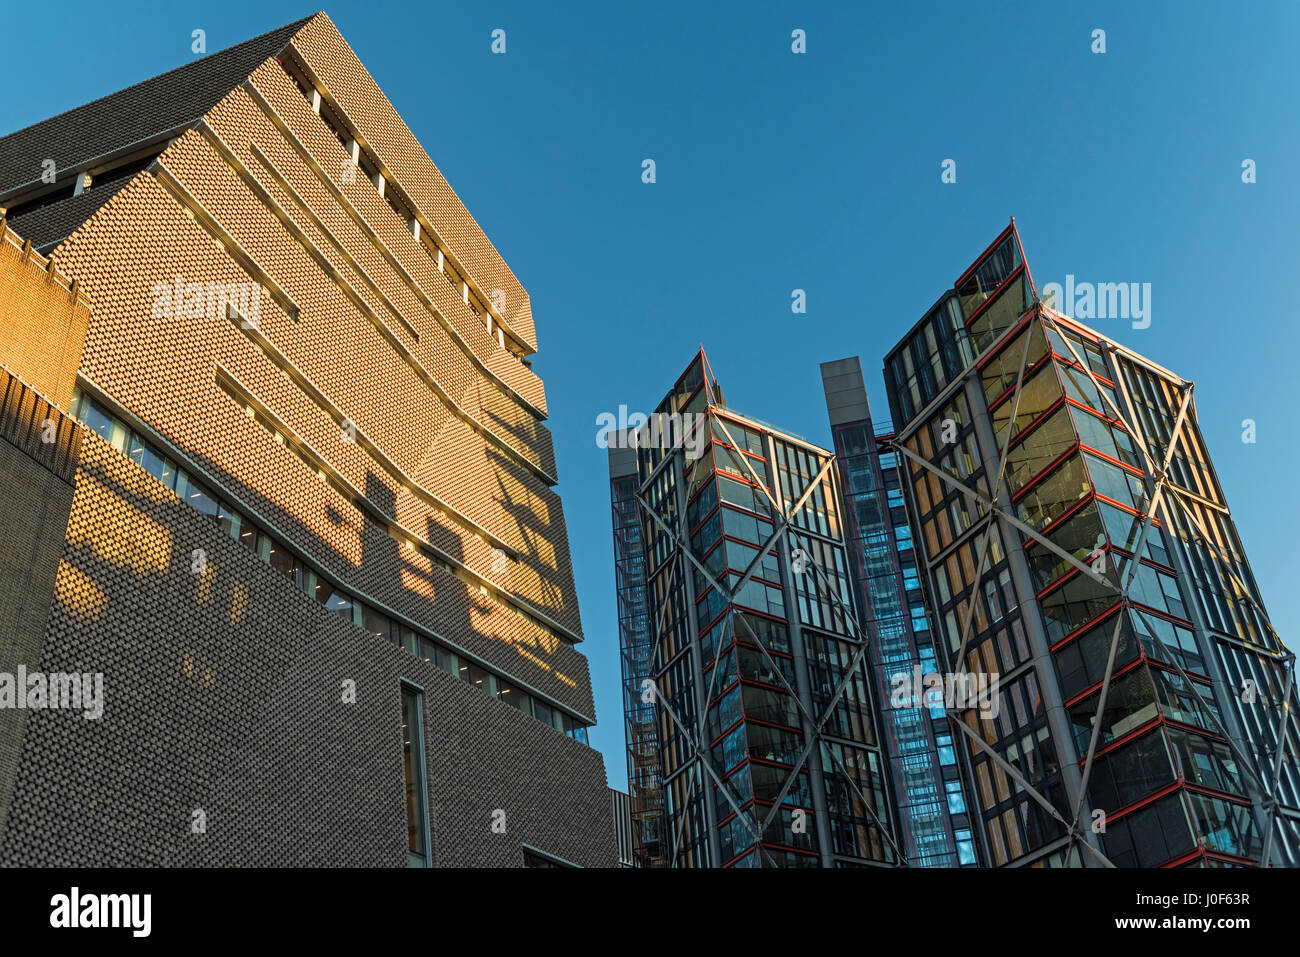 Tate Modern extension and Neo Bankside Apartments Southbank London UK - Stock Image